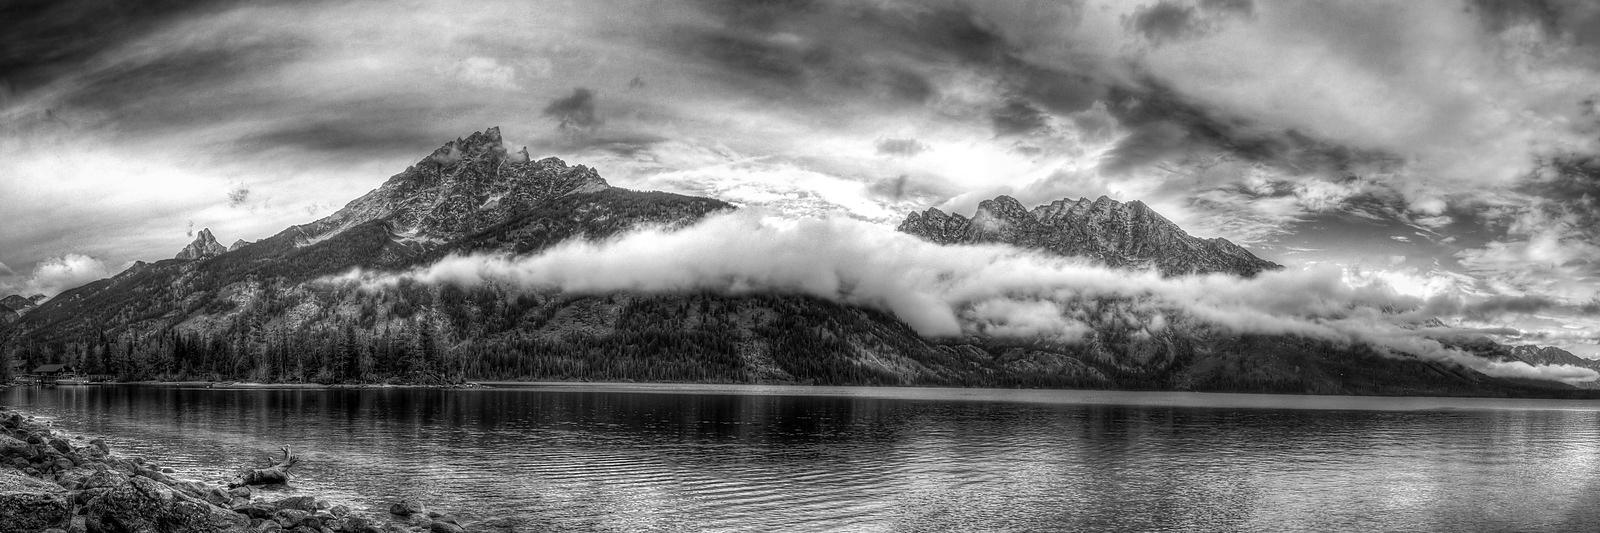 Panoramic of Jenny Lake blanketed in a layer of fog.  Grand Tetons National Park, Wyoming